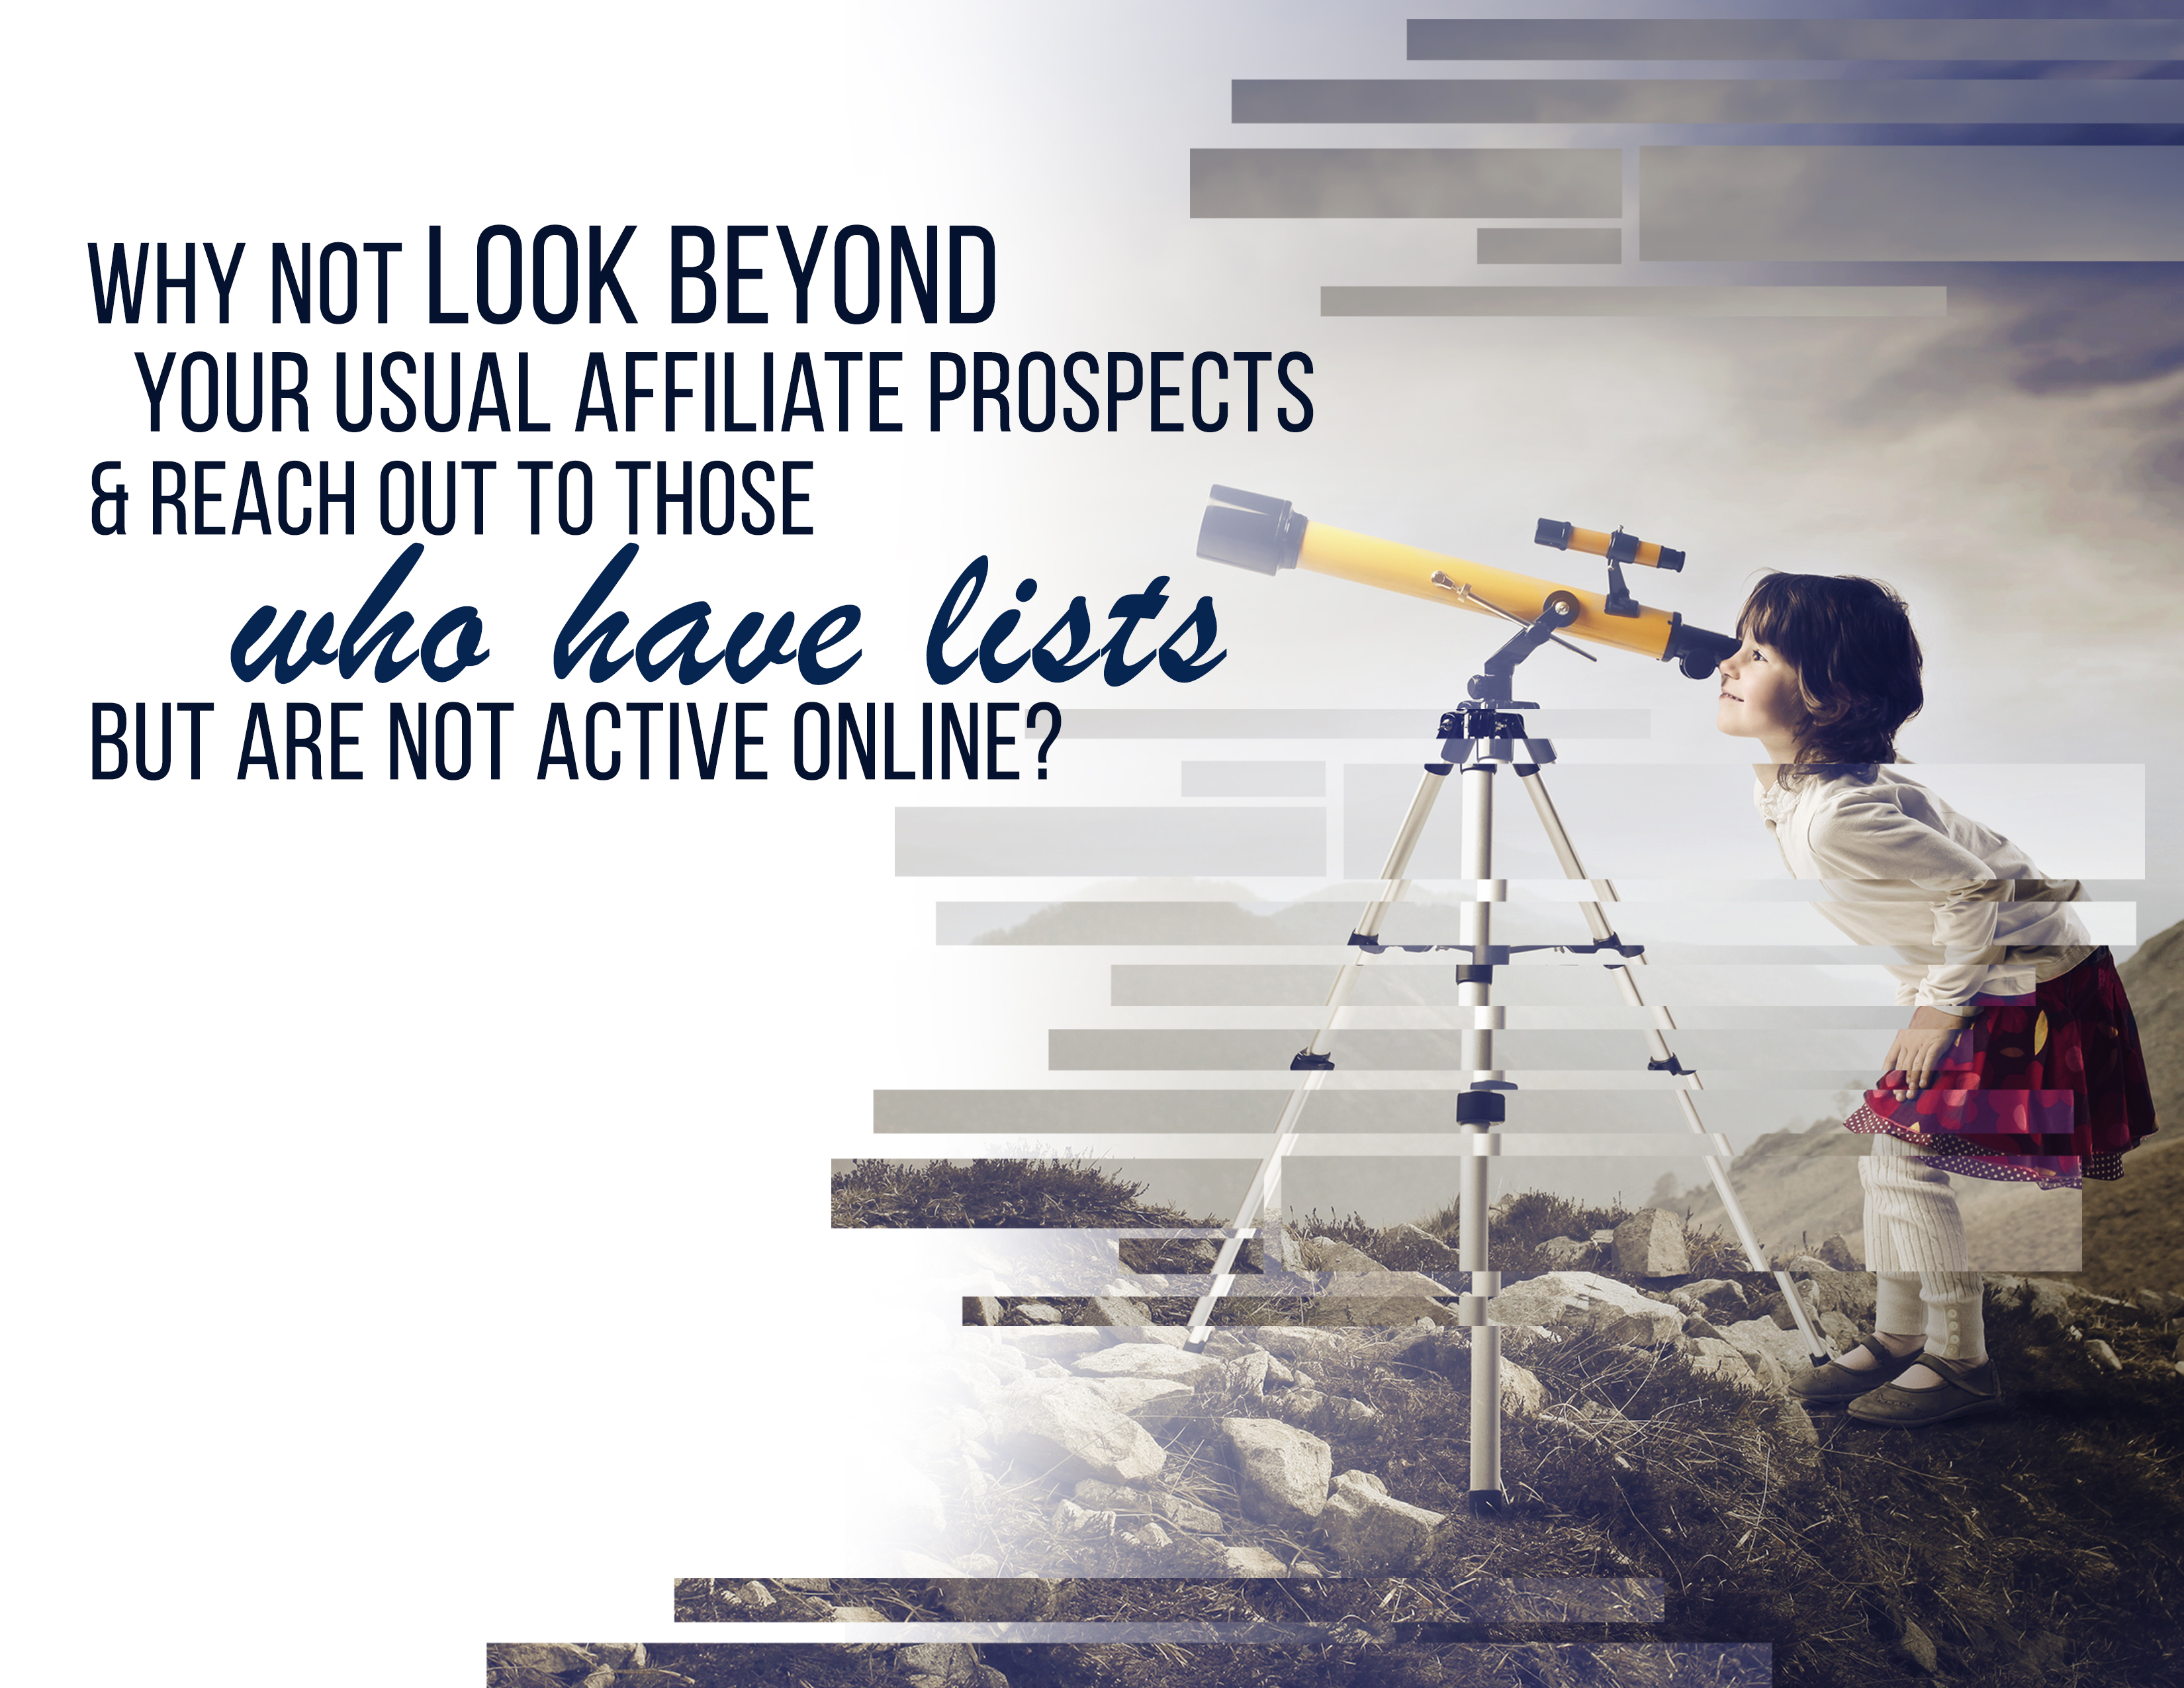 Look Beyond Your Usual Affiliate Prospects